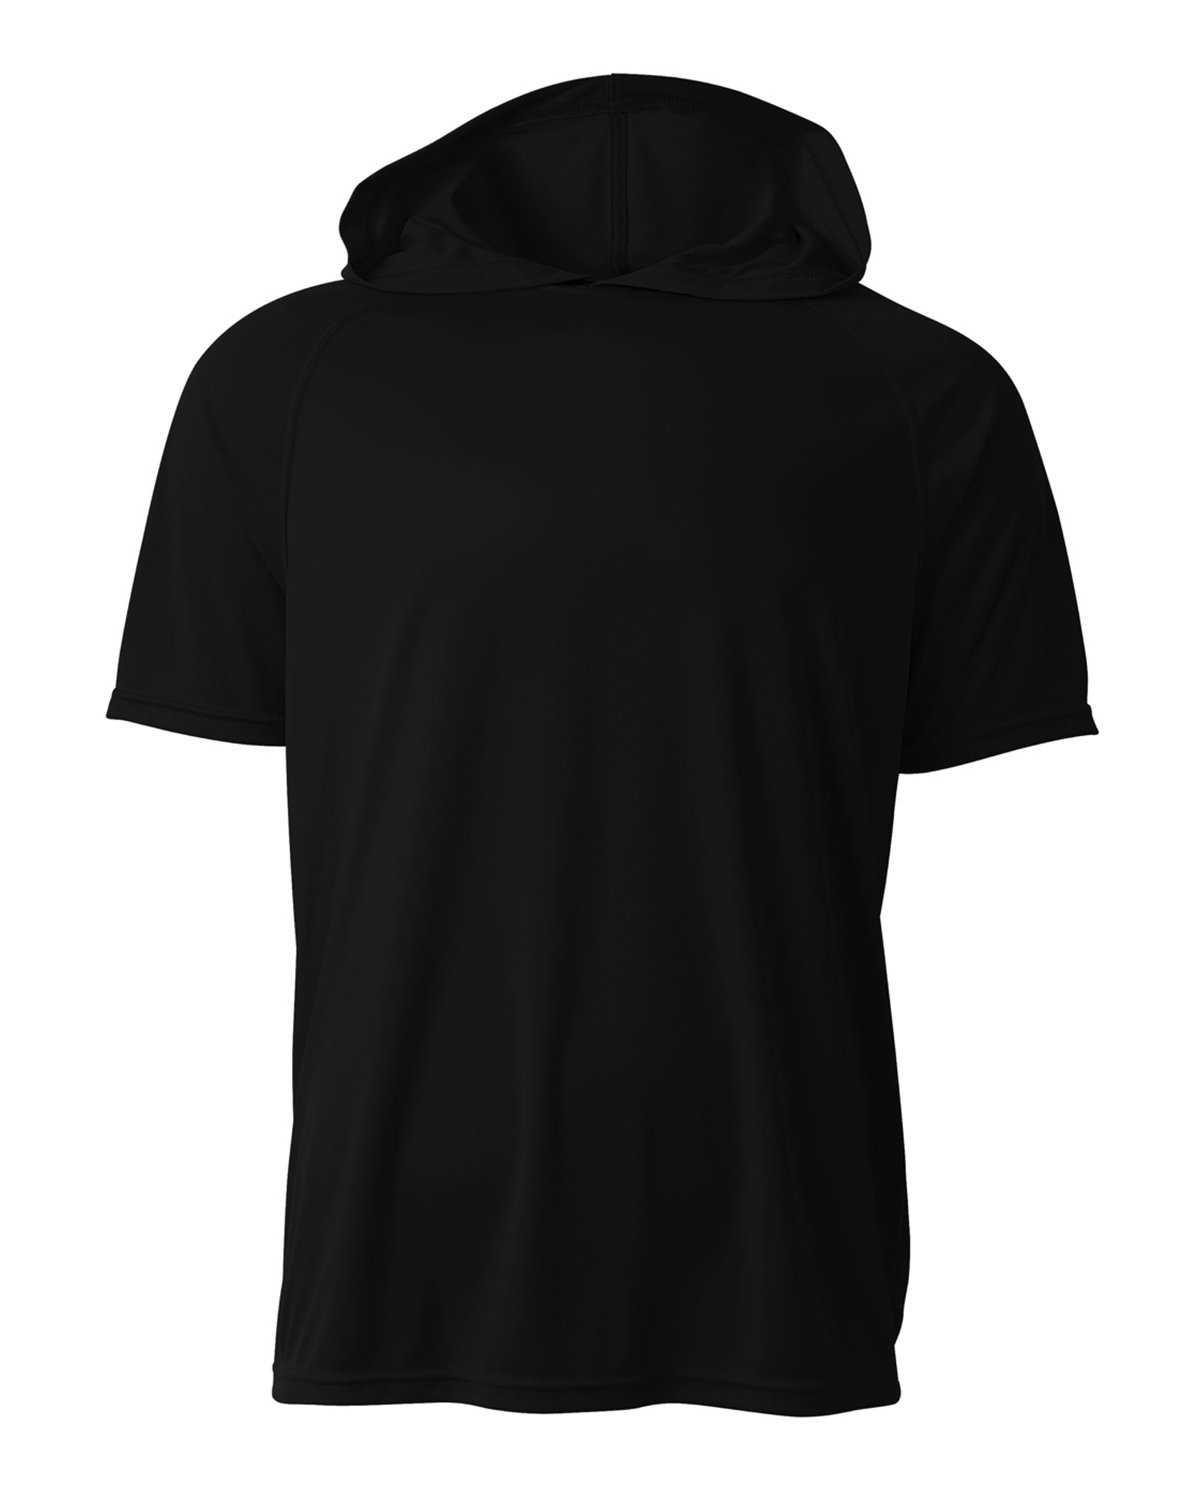 A4 Men's Cooling Performance Hooded T-shirt BLACK